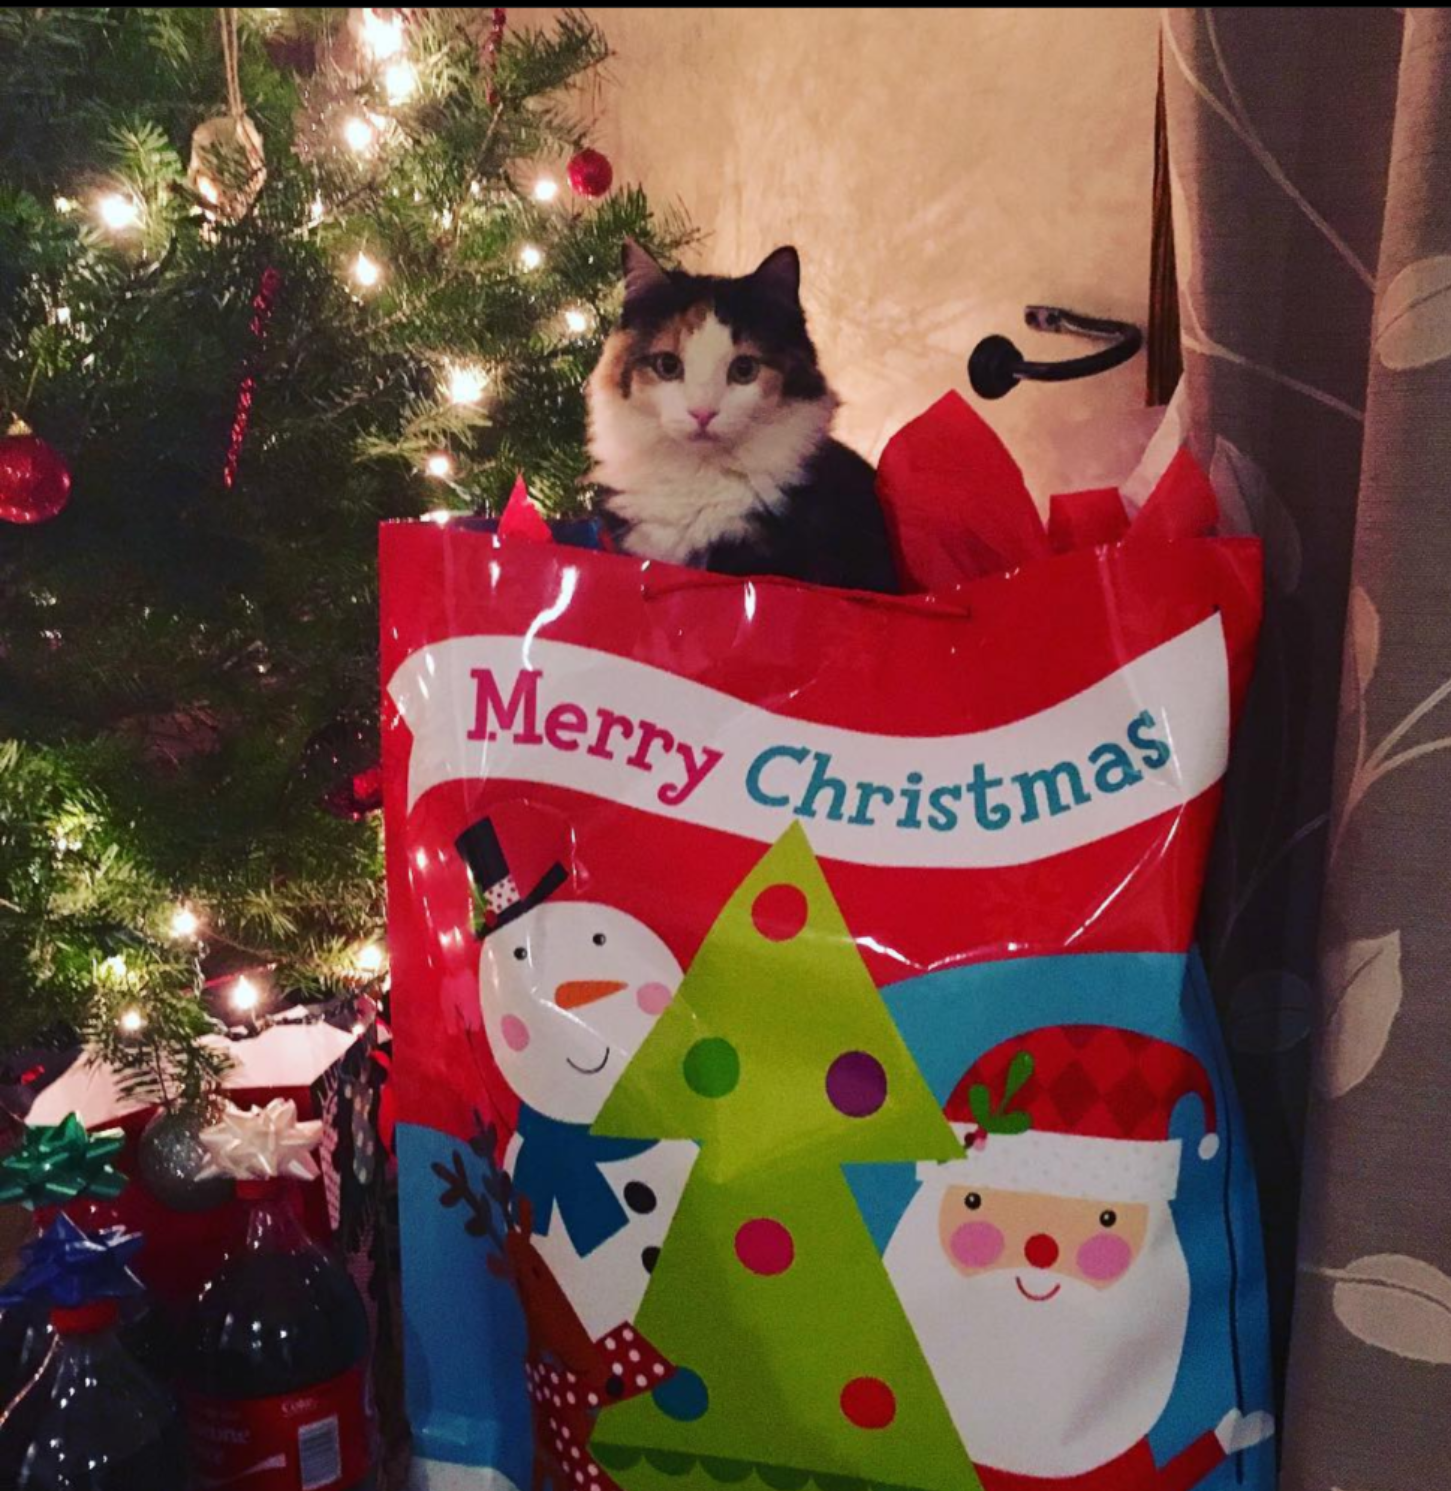 Iowa cat home for Christmas after being lost for nearly 5 years